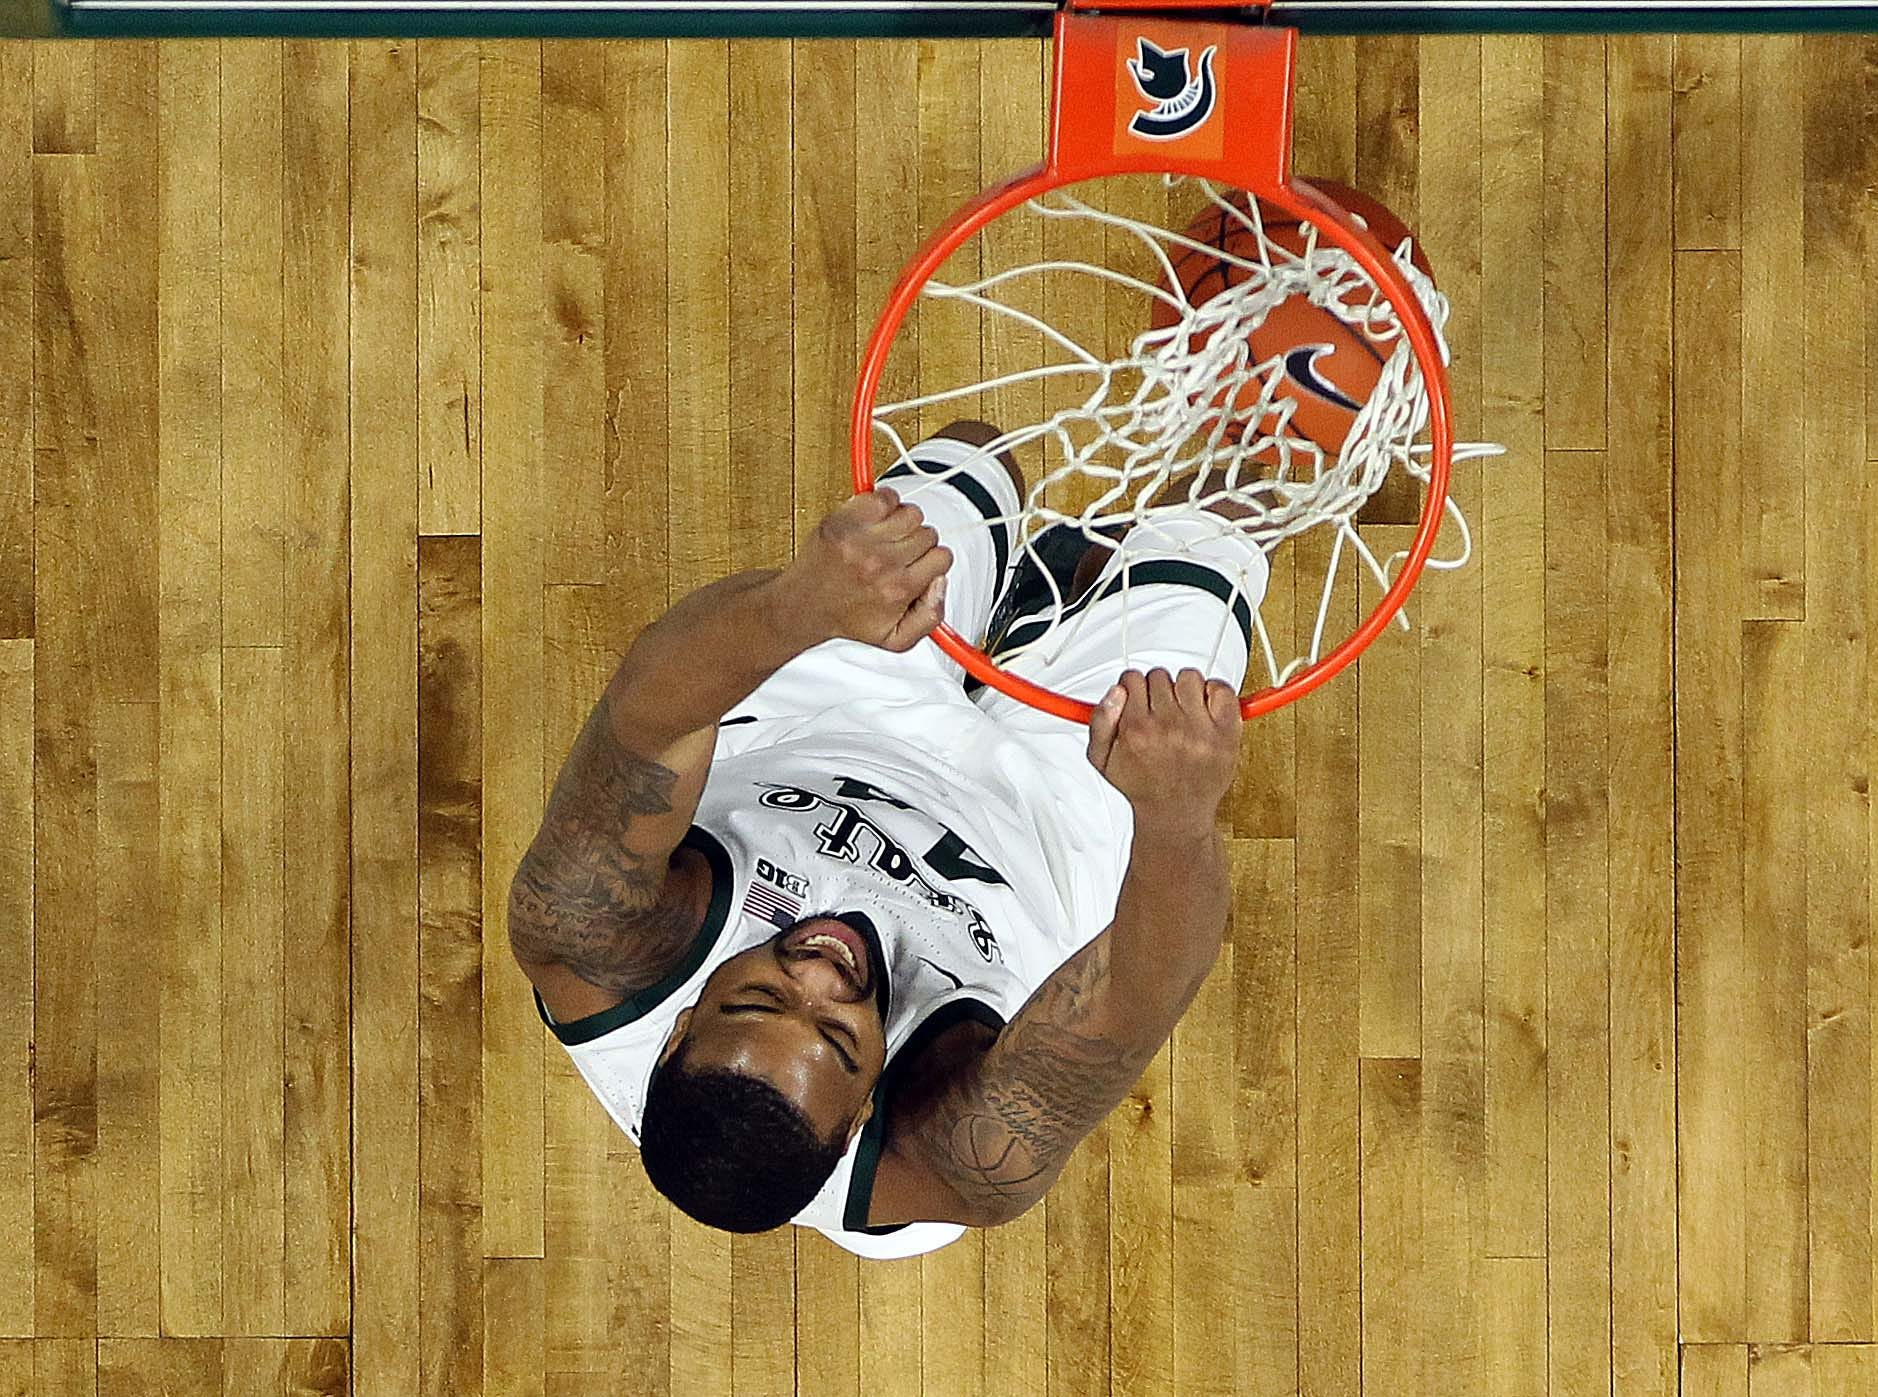 Jan 8, 2019; East Lansing, MI, USA; Michigan State Spartans forward Nick Ward (44) dunks the ball during the first half of a game against the Purdue Boilermakers at the Breslin Center. Mandatory Credit: Mike Carter-USA TODAY Sports